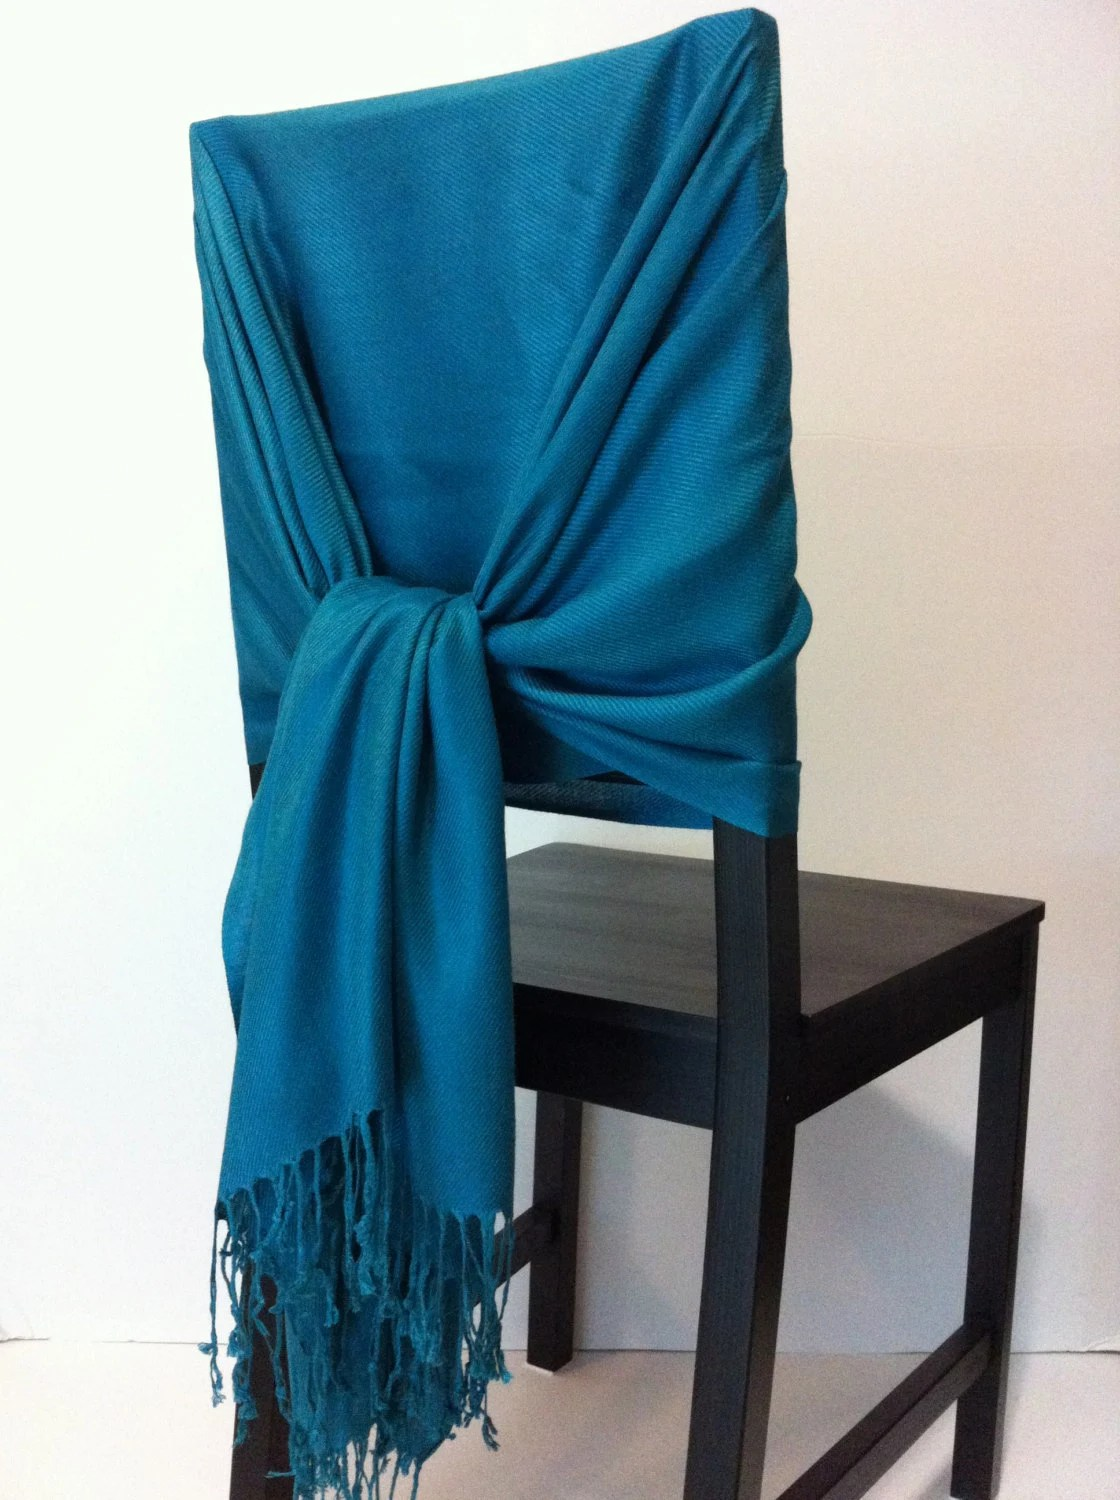 teal chair covers for wedding bicycle seat desk pashmina scarf shawls